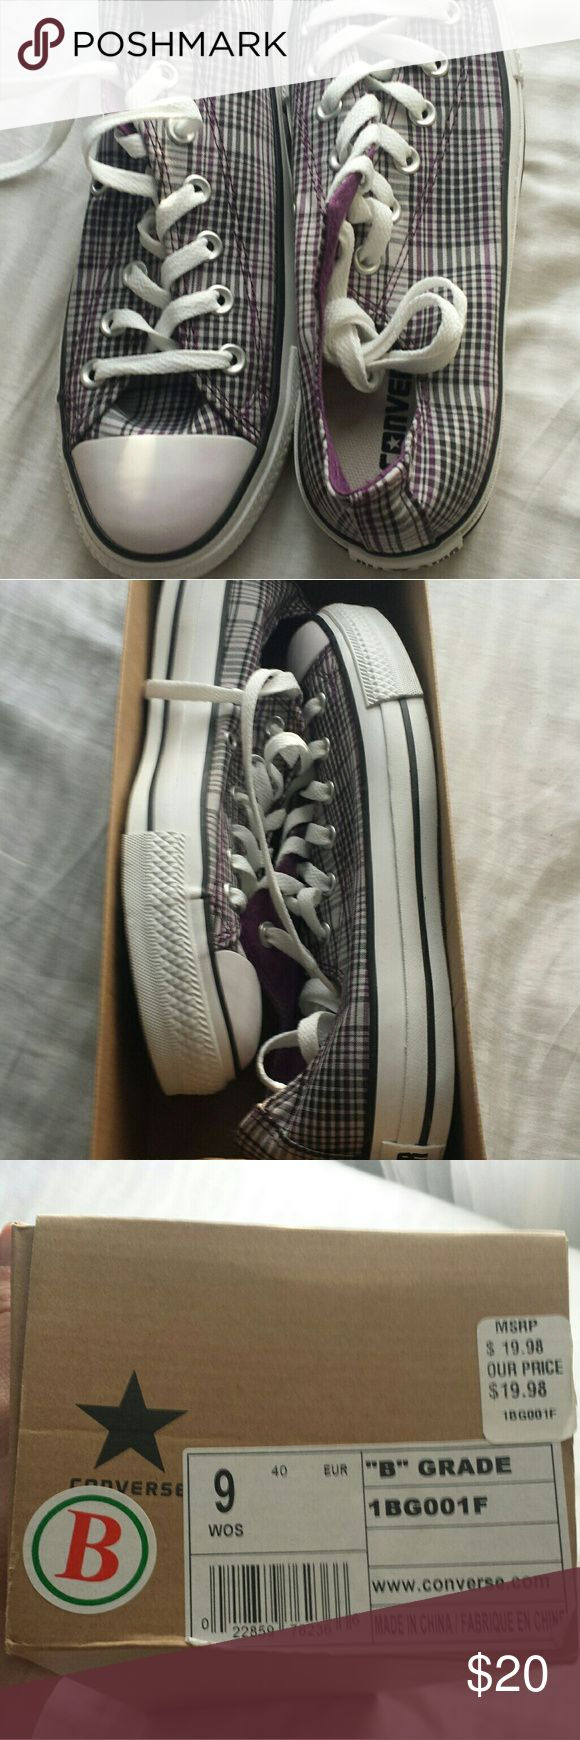 NWT Women's Converse Plaid Sneakers Women's size 9 Converse (never worn!) Has grey and purple plaid pattern Purchased from Converse outlet Converse Shoes Sneakers